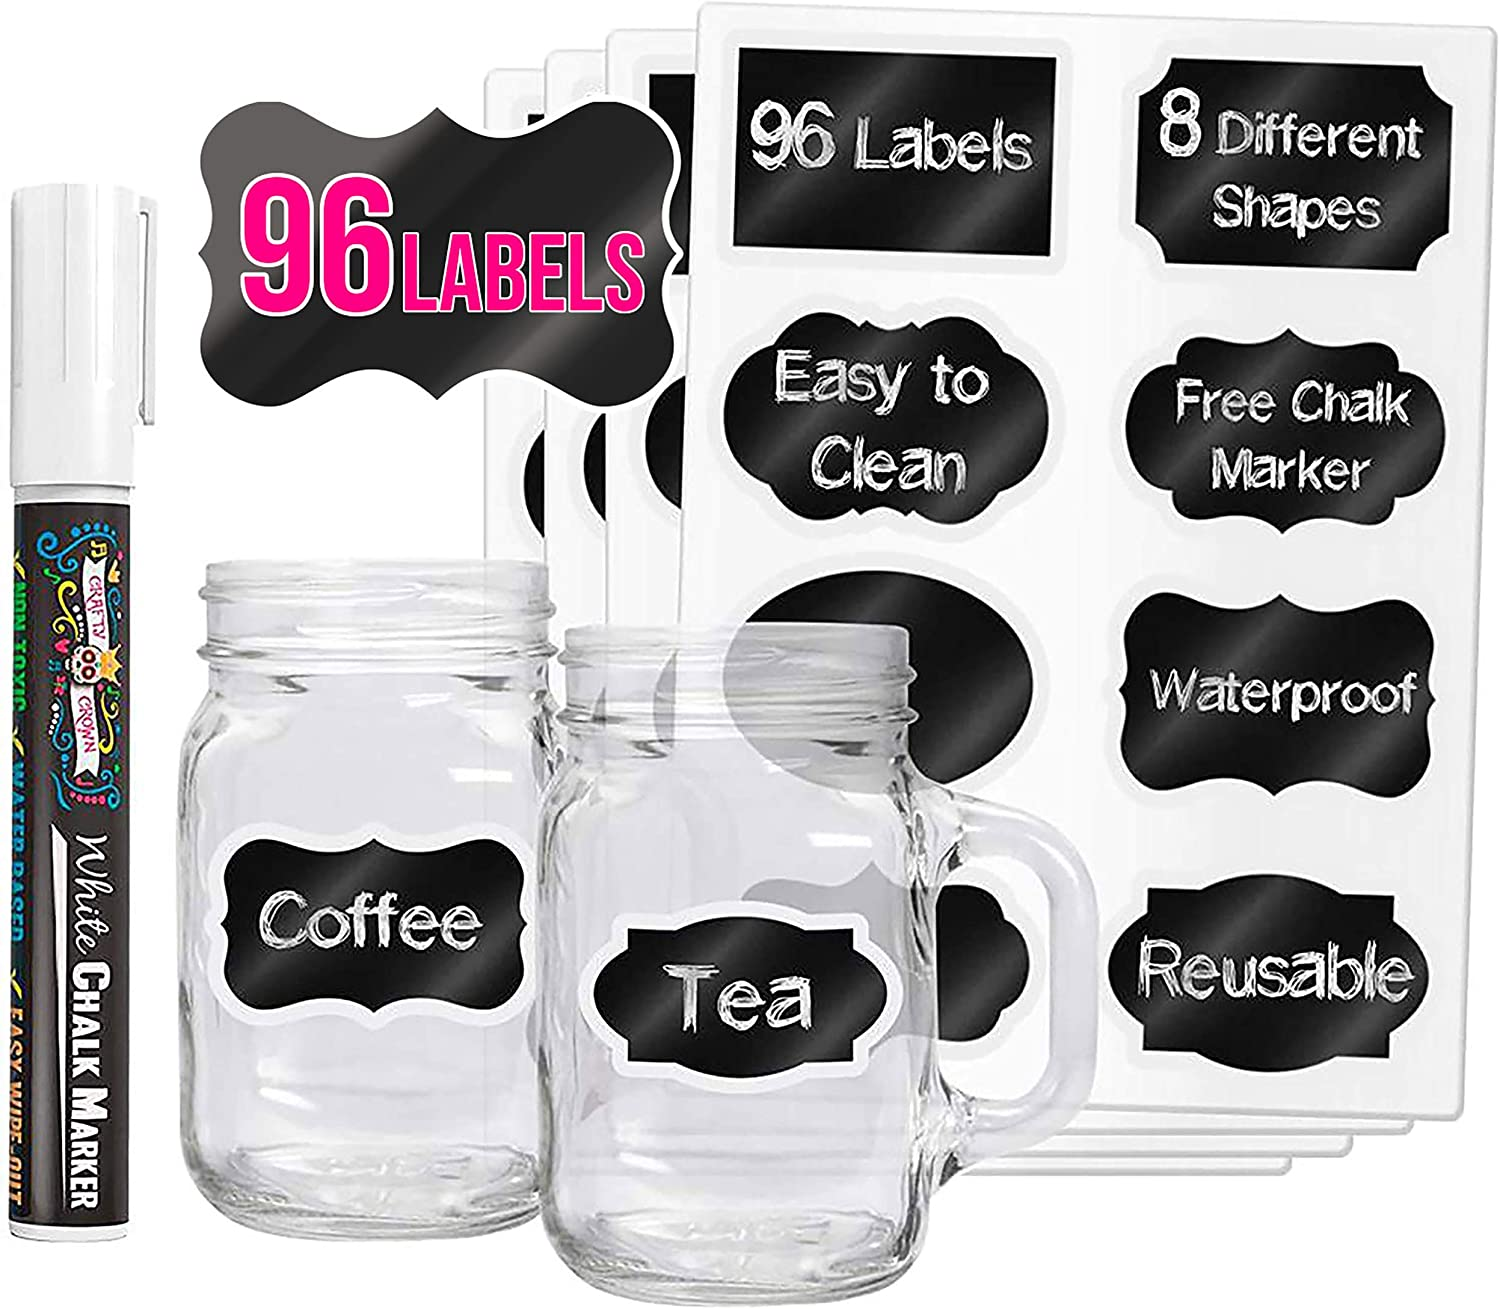 96 Premium Chalkboard Labels with Erasable White Chalk Marker Included - Chalk Board Mason Jar Labels - Removable Blackboard Sticker Label for Jars